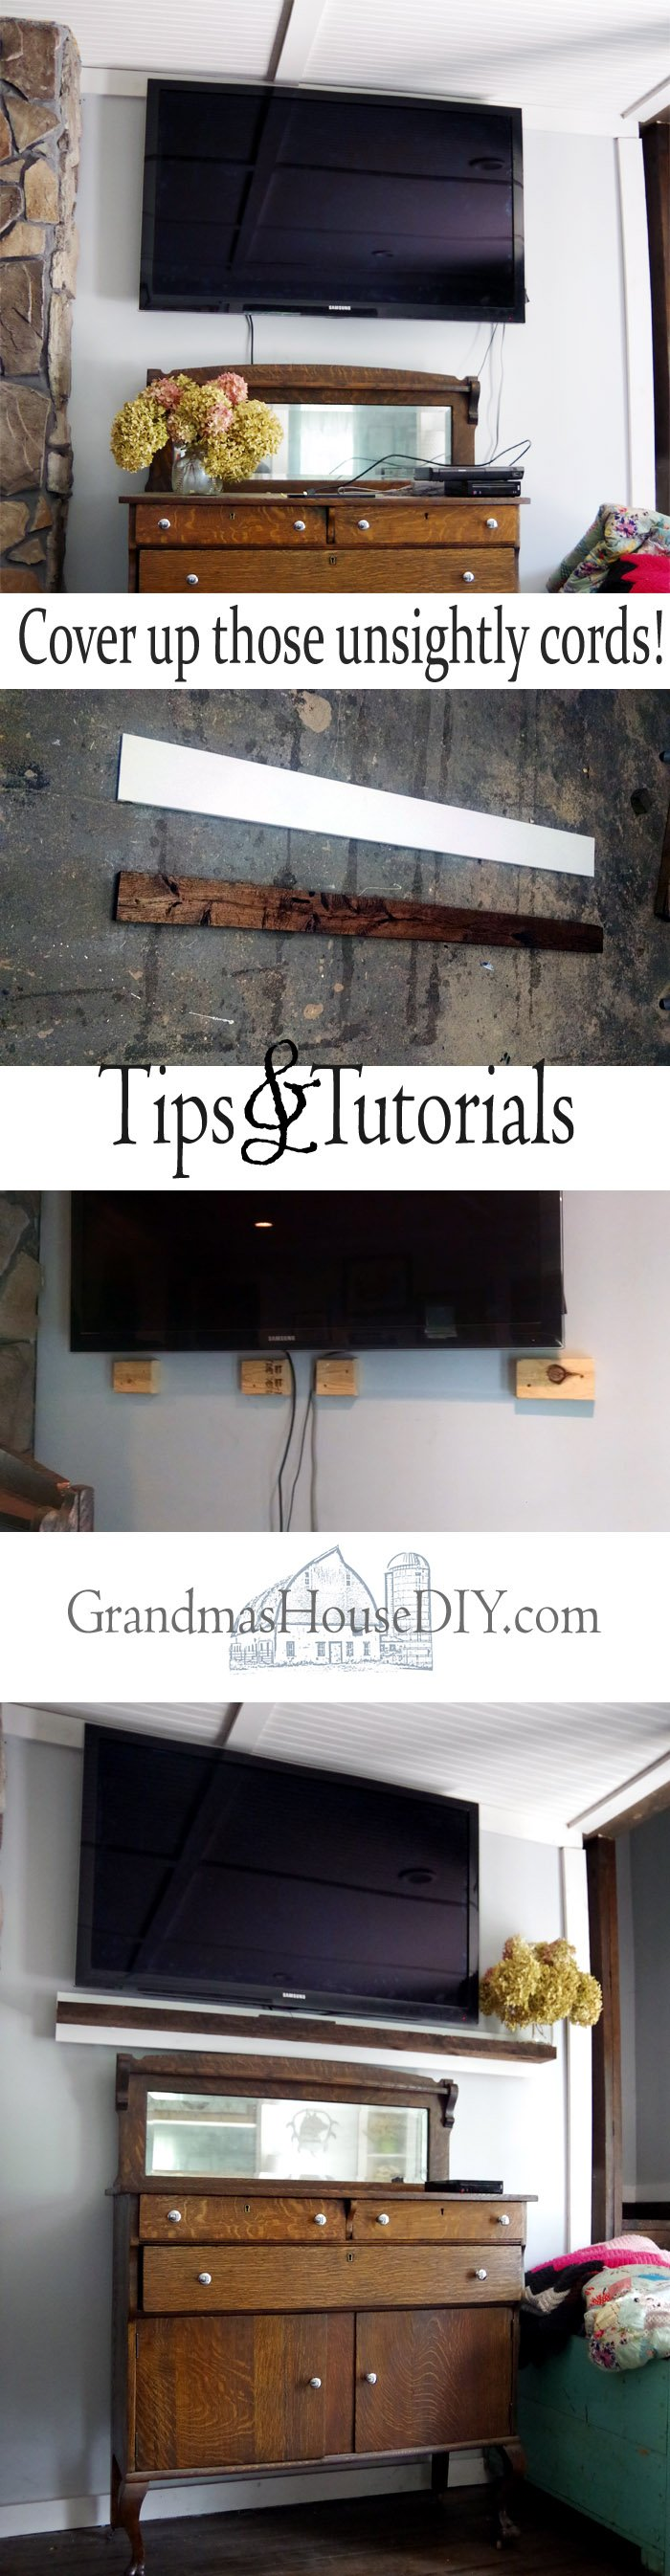 How to build a faux mantel floating shelf beneath your tv television to hide those unsightly cords and provide a shelf for some pretty storage!